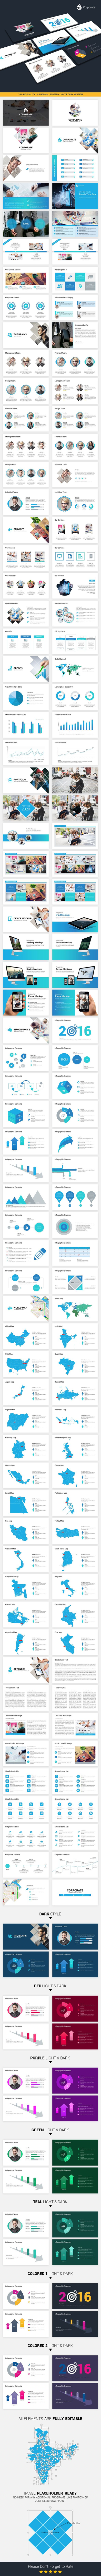 Corporate PowerPoint Template #design #slides Download: http://graphicriver.net/item/corporate-powerpoint-template/13837543?ref=ksioks